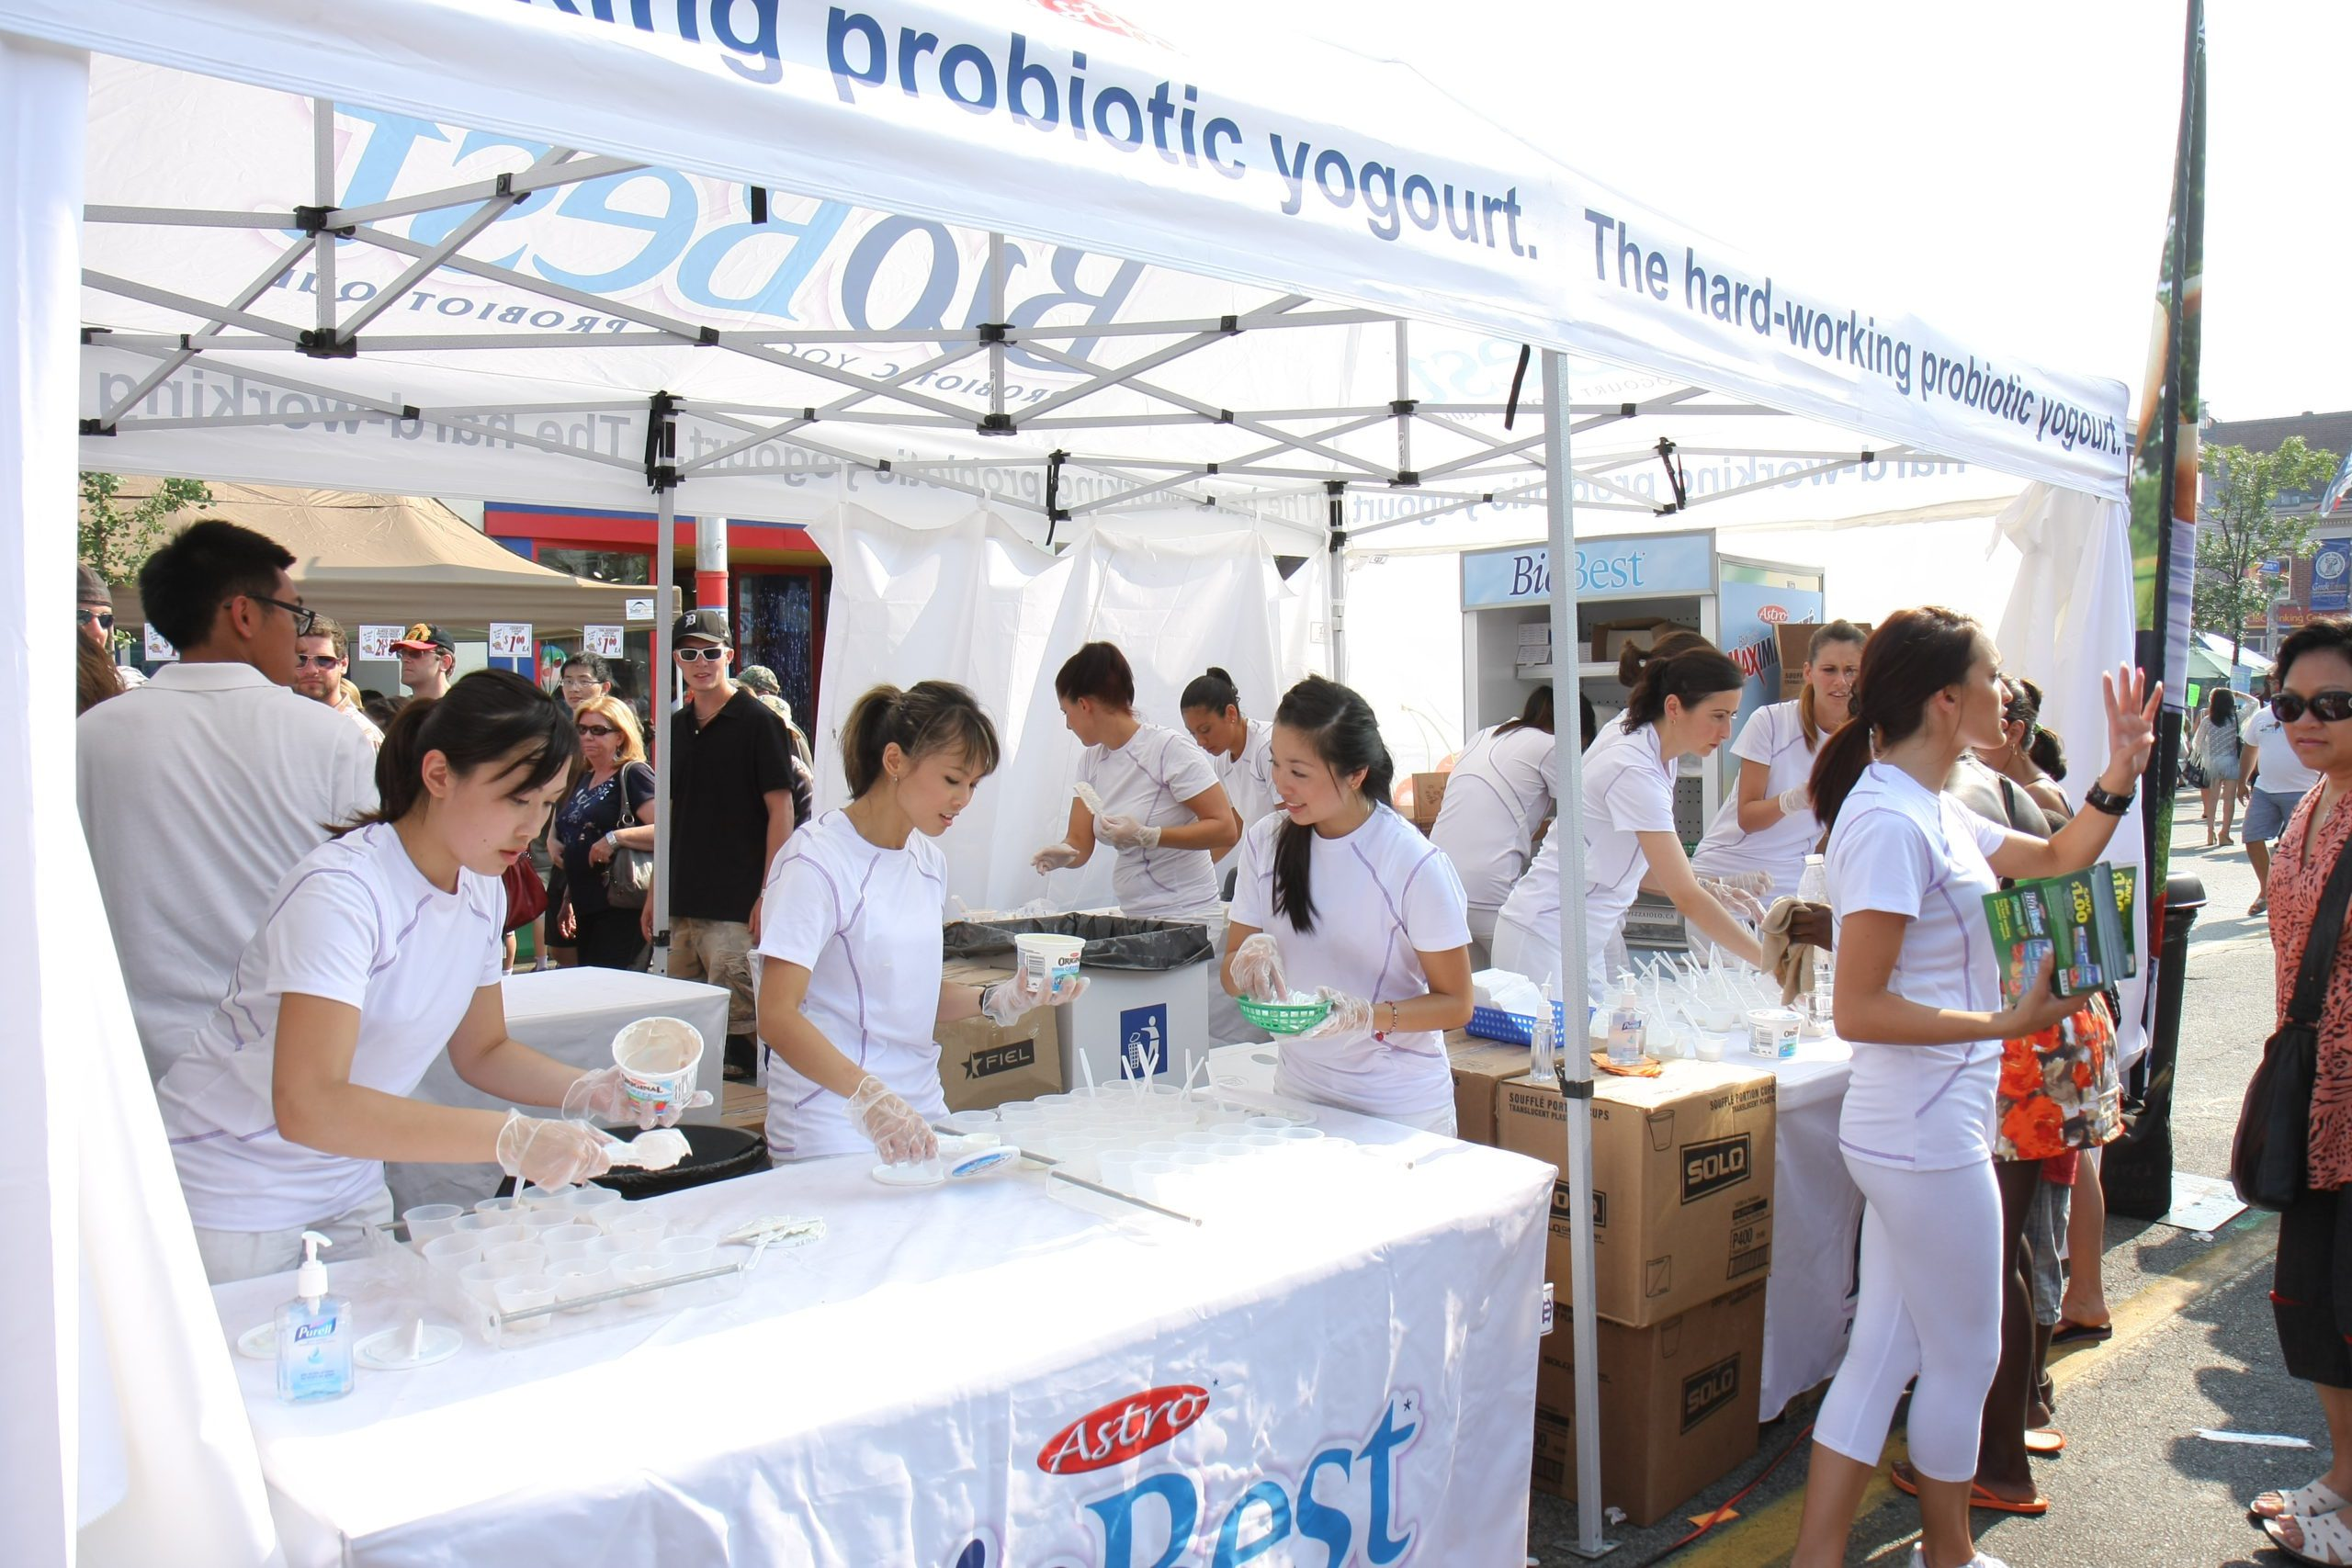 danforth online dating 8 best toronto greek restaurants opa afterall, taste of the danforth, is one of best annual food festivals in toronto, hosted in no other than greektown greek.